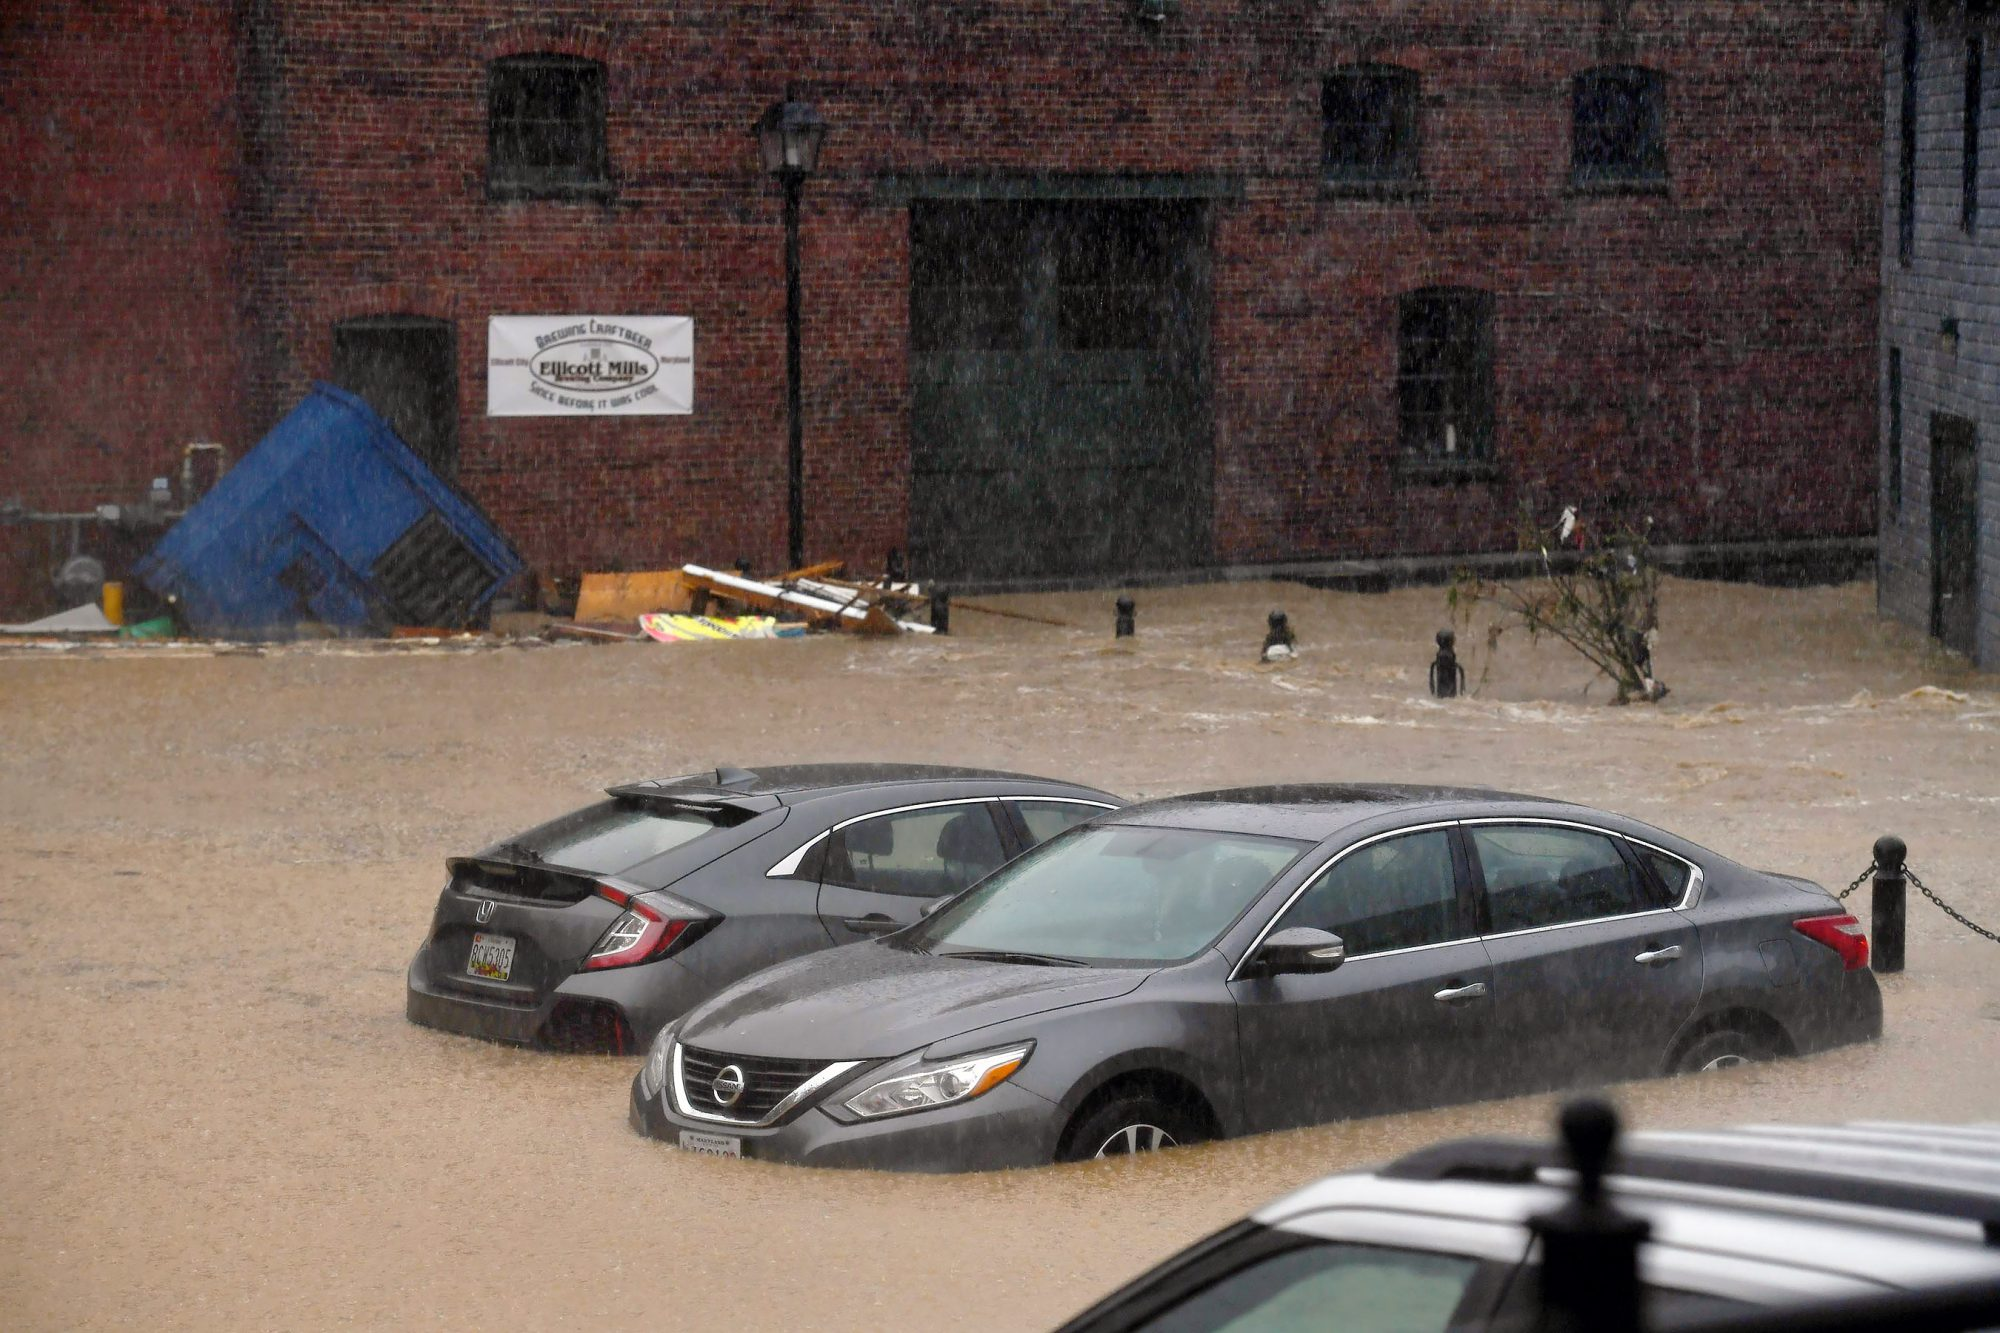 Ellicott City faces another Flash Flood Emergency after drenching rain for several hours